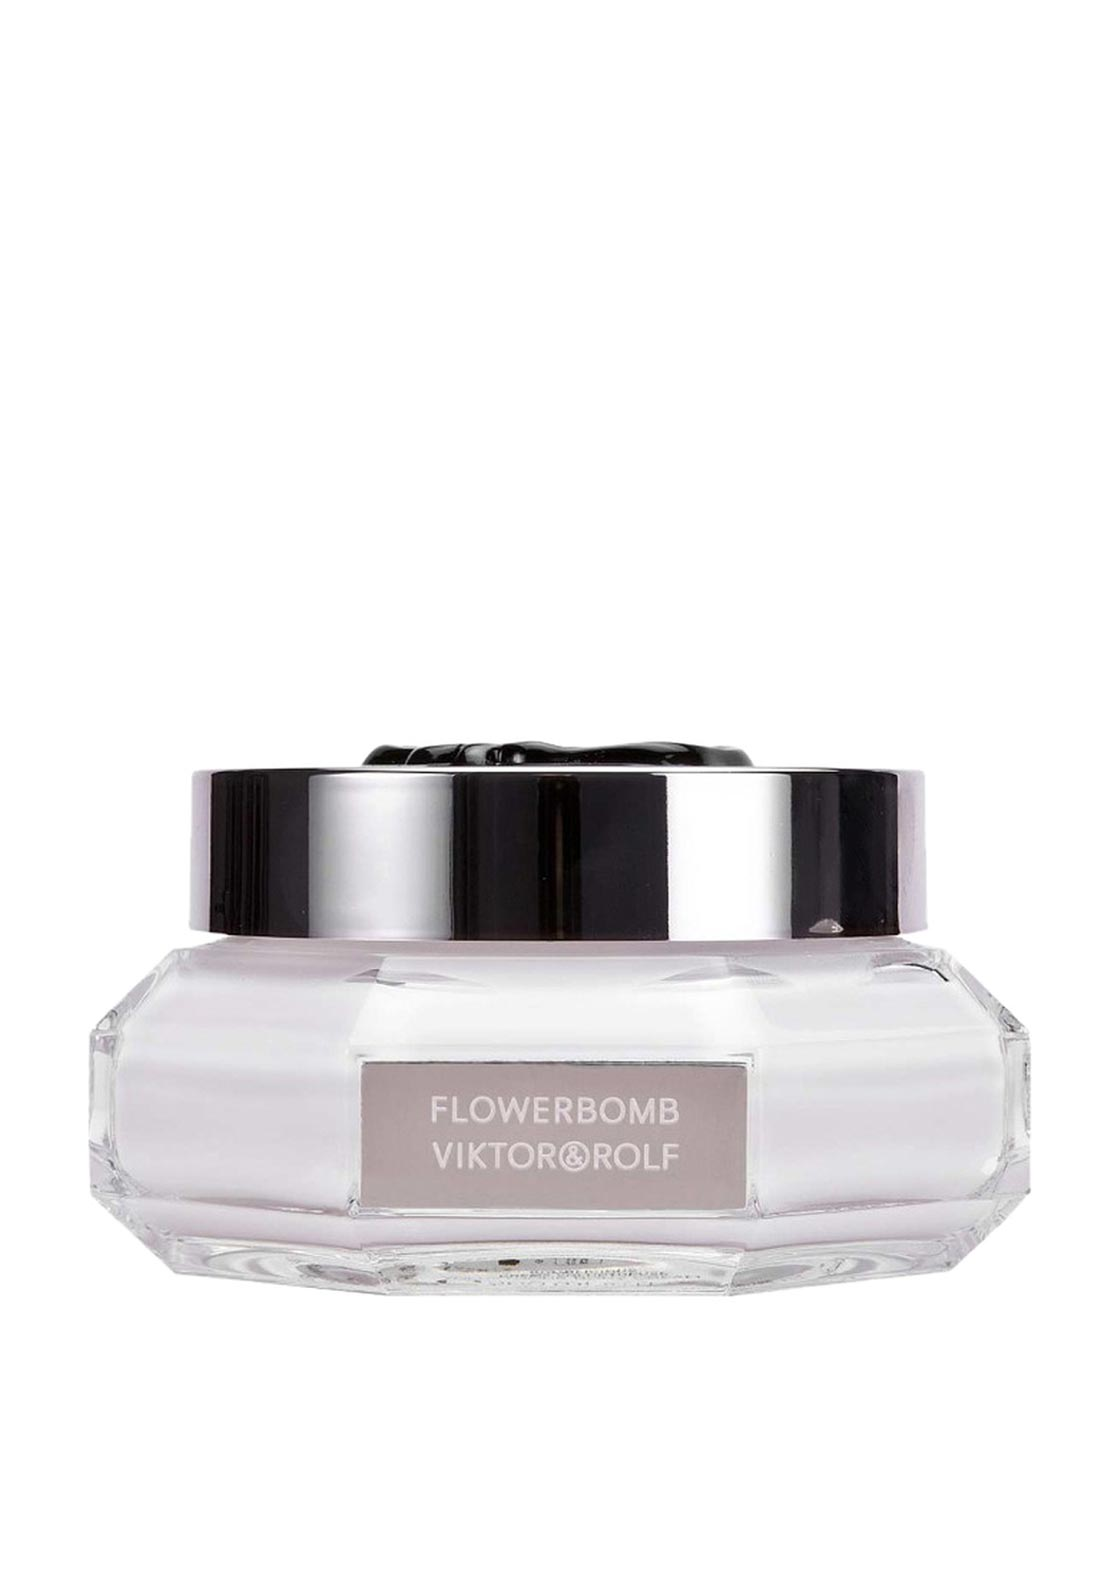 Viktor & Rolf Flowerbomb Perfumed Body Cream, 200ml